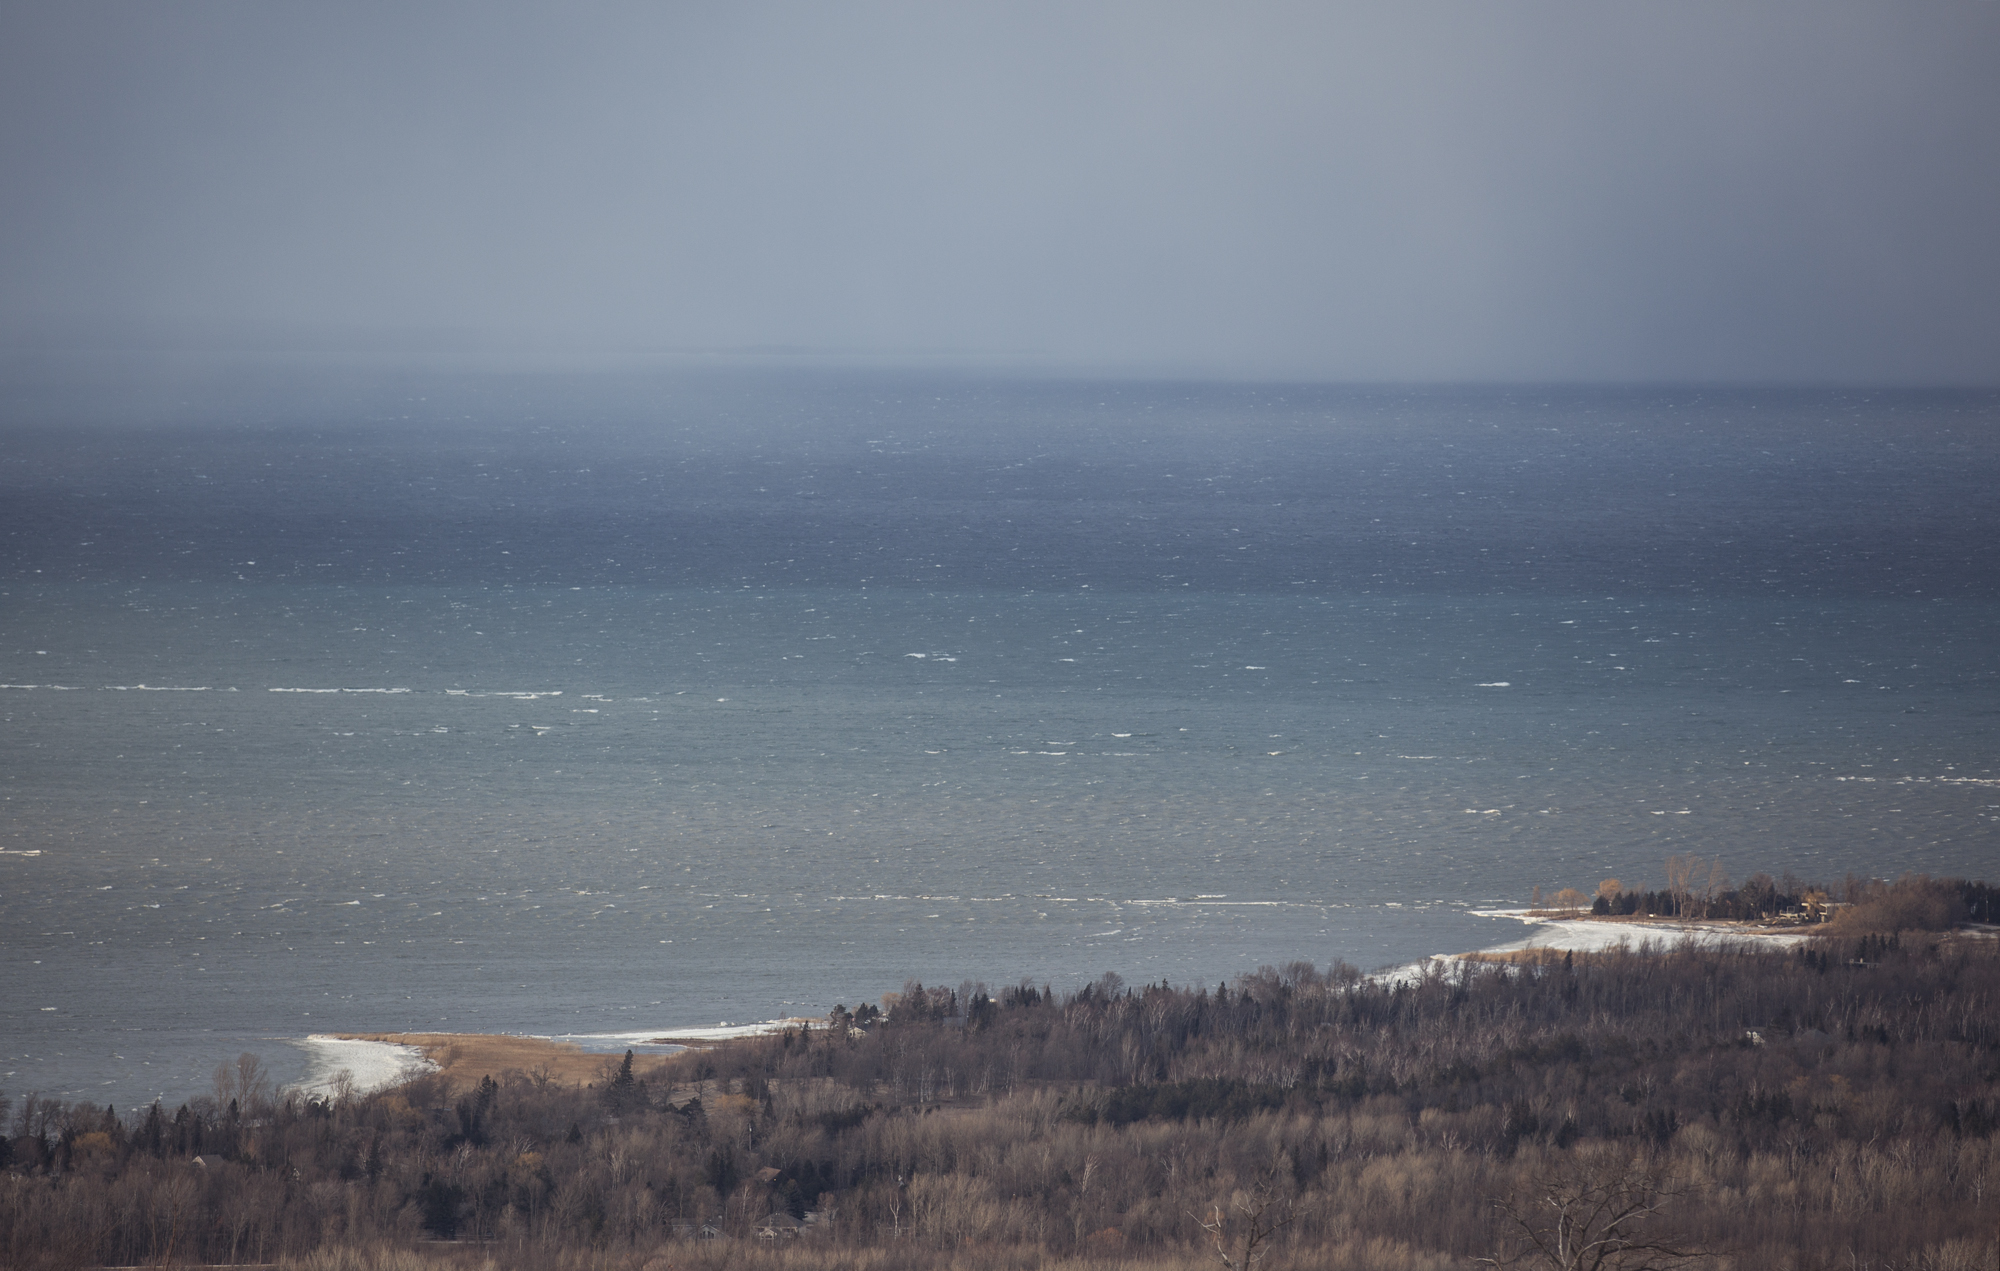 Surfing_the_Great_Lakes_Ontario_Alexandra_Coté_Durrer6.jpg